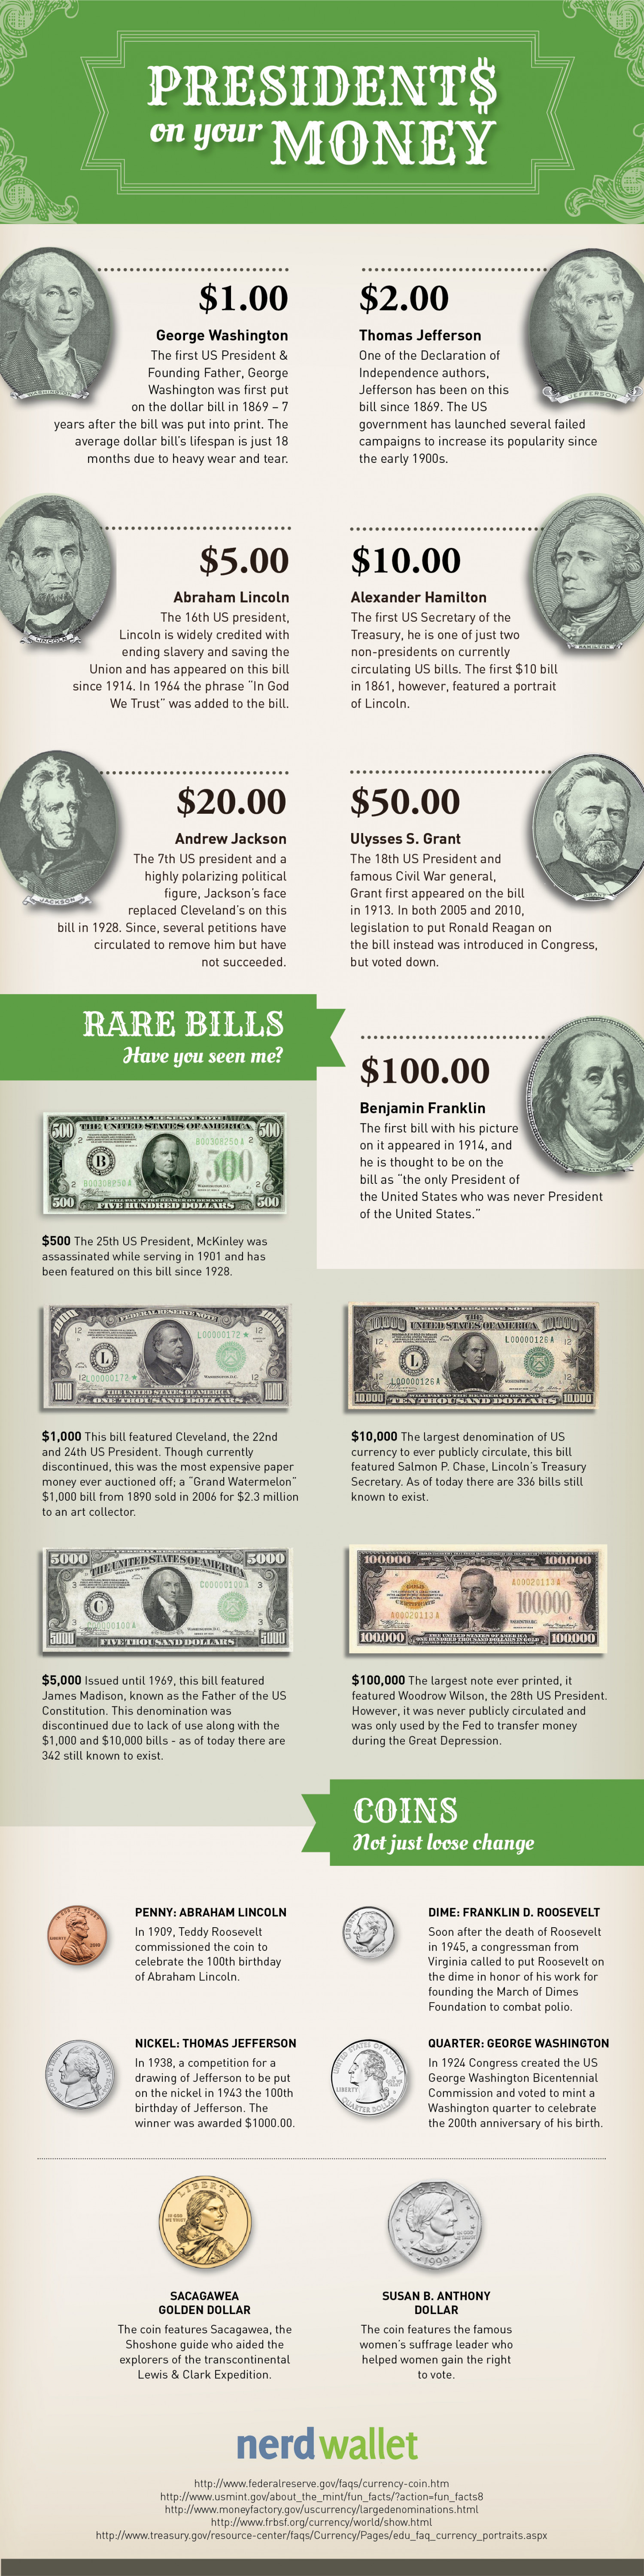 Presidents On Your Money